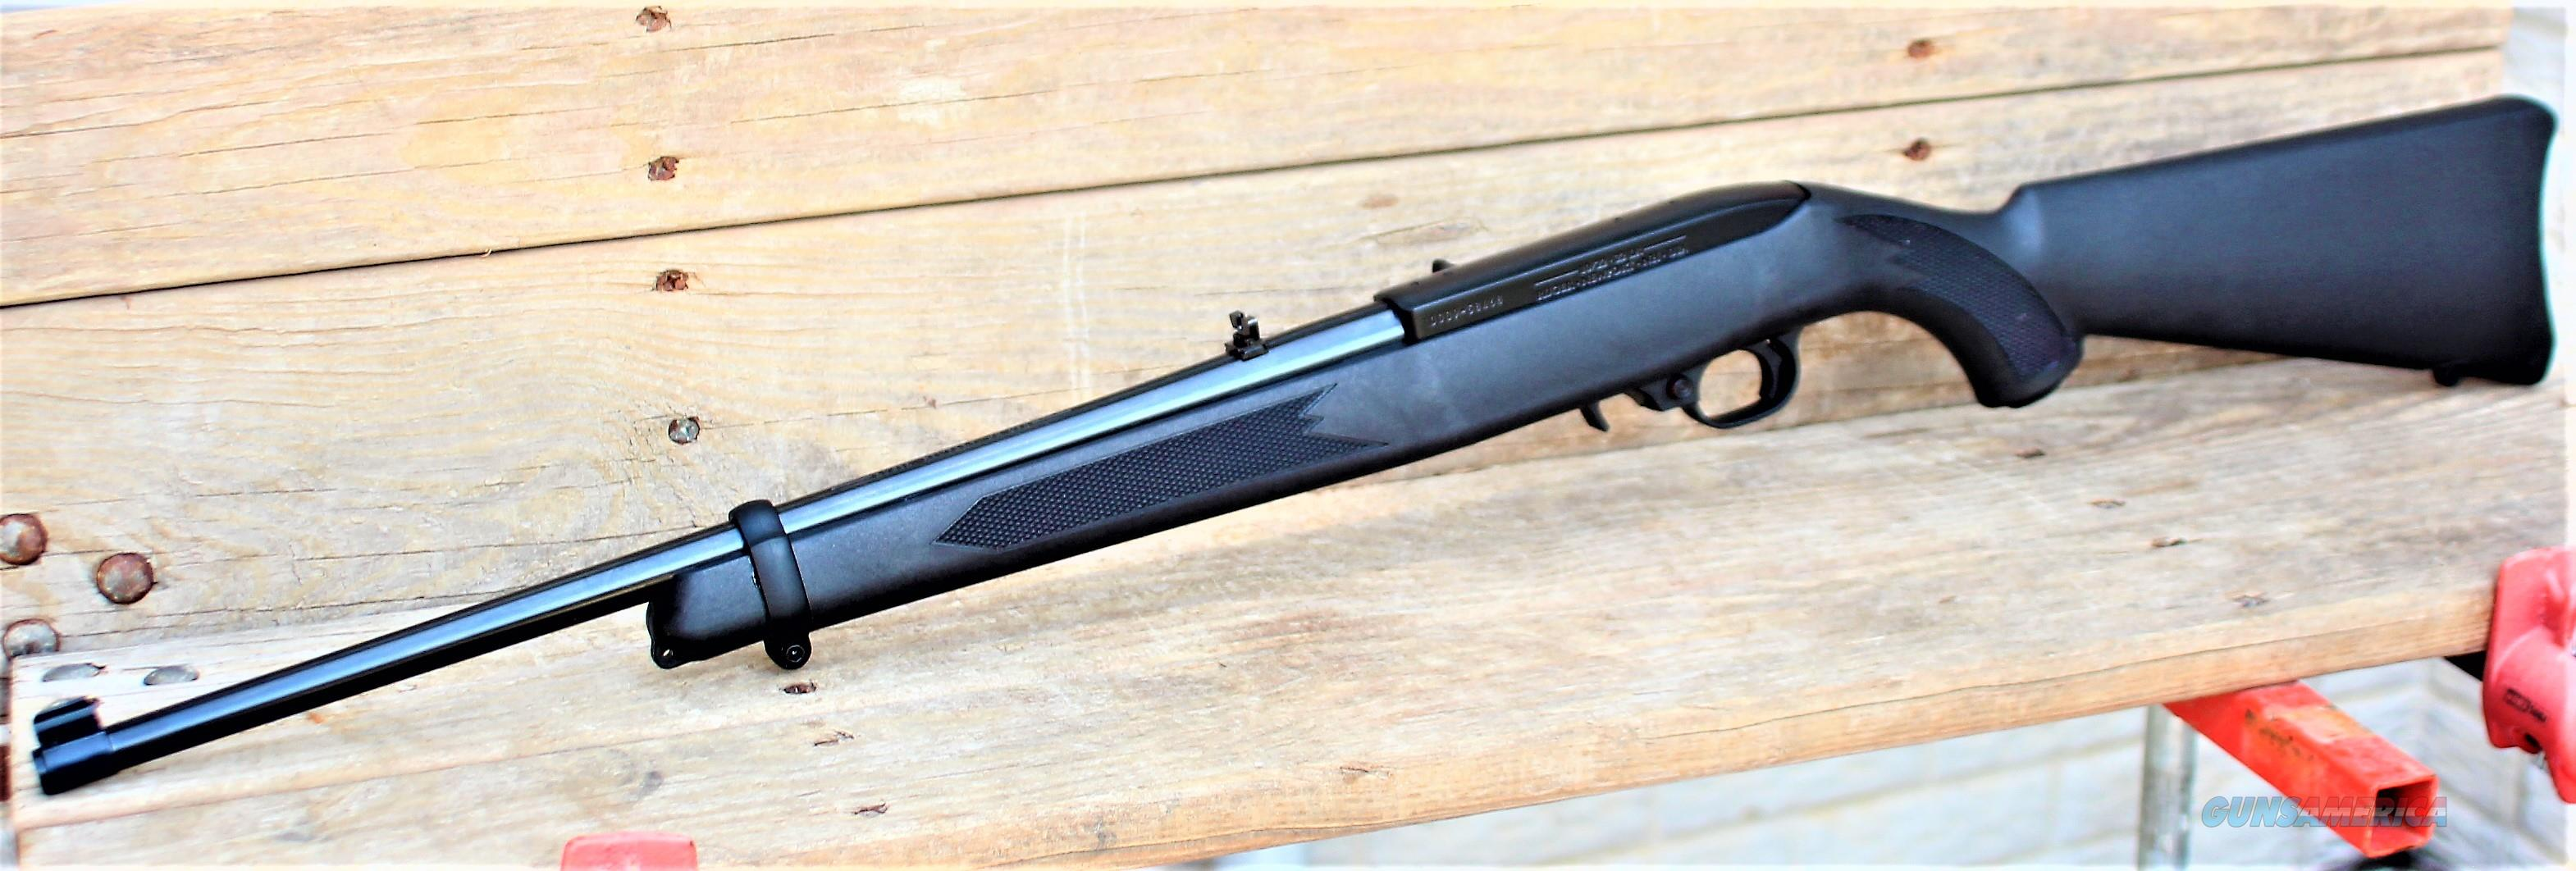 "EASY PAY $19 Black Ruger 10/22 Cheap Ammunition 1:16"" RH twist 18.5""  barrel  Youth or Adult training rifle Drilled and tapped for scope mount Small varmint hunting 22lr .22 Long Rifle 10 round  18.5"" contoured buttpad Barrel 1151-f  Guns > Rifles > Ruger Rifles > 10-22"